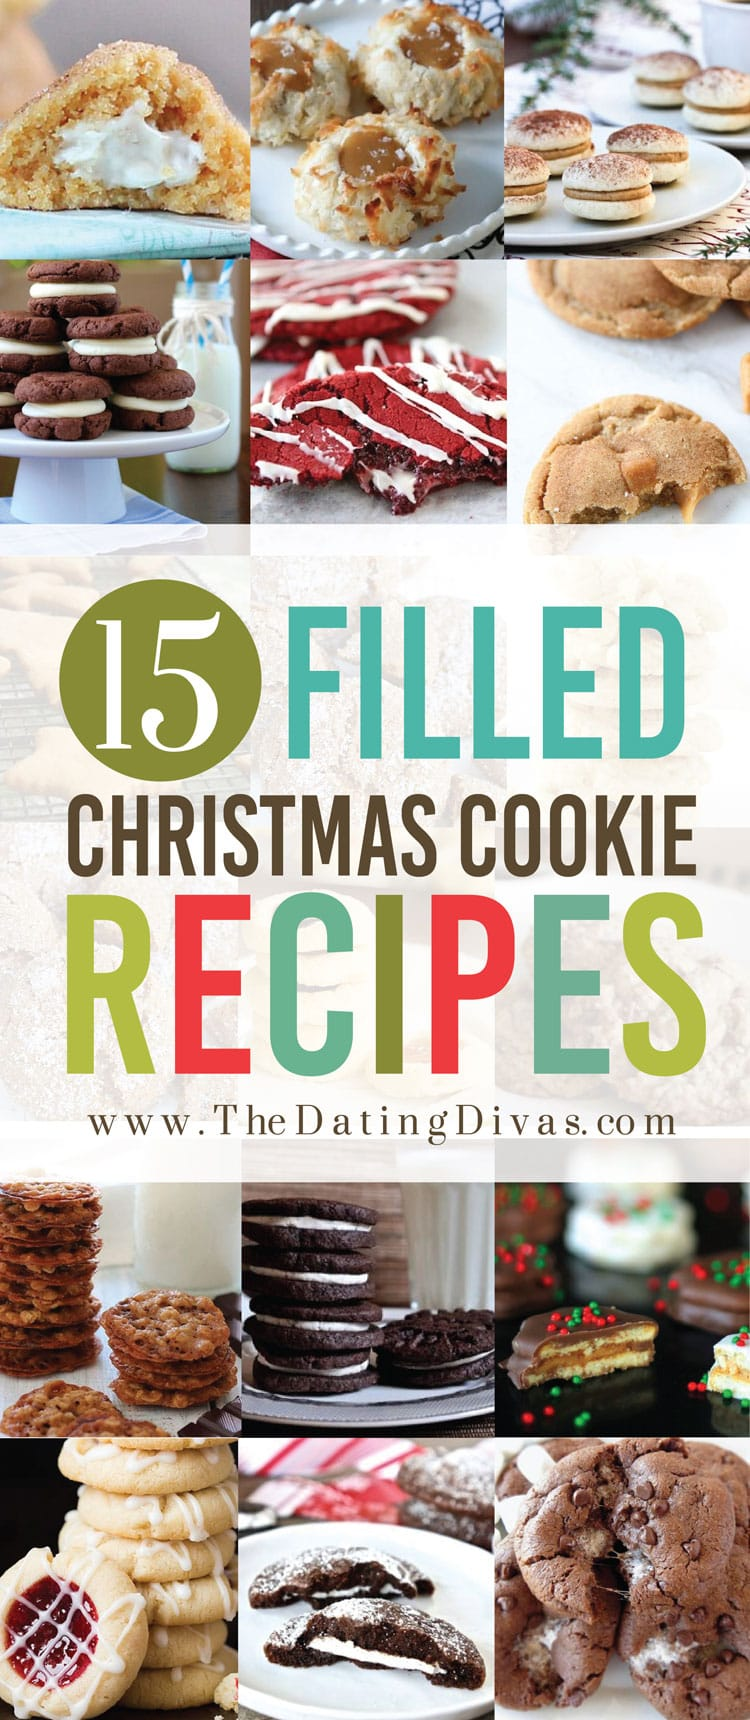 Christmas Cookies that are filled or stuffed with delicious flavors!